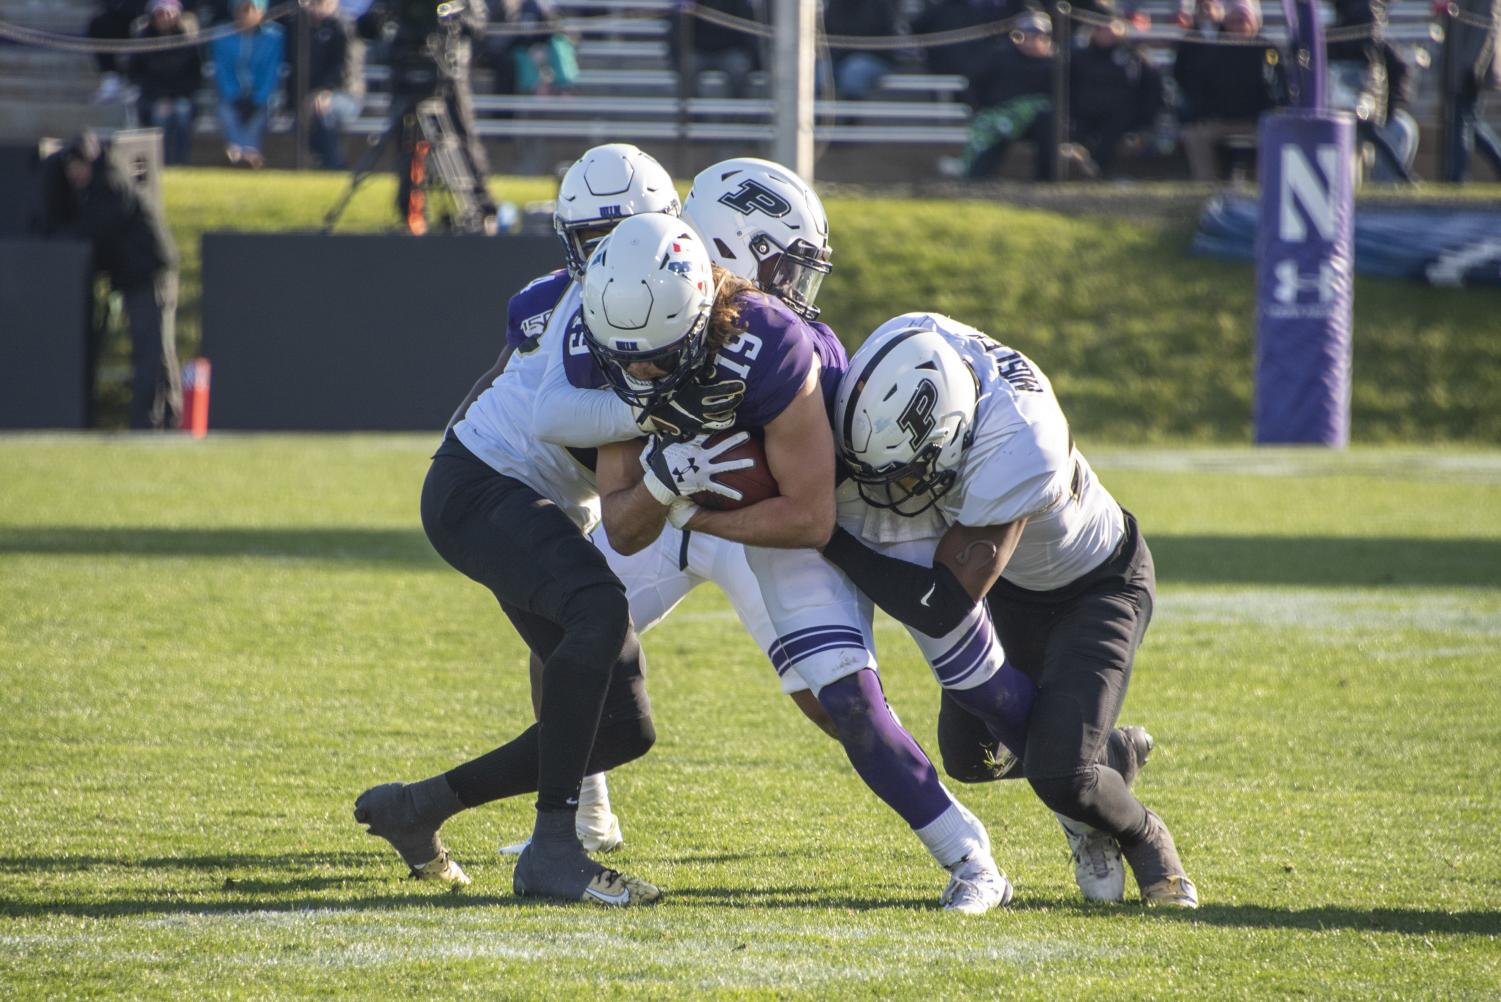 Riley Lees gets brought down. Northwestern fell 24-22 in a heartbreaker Saturday at Ryan Field.